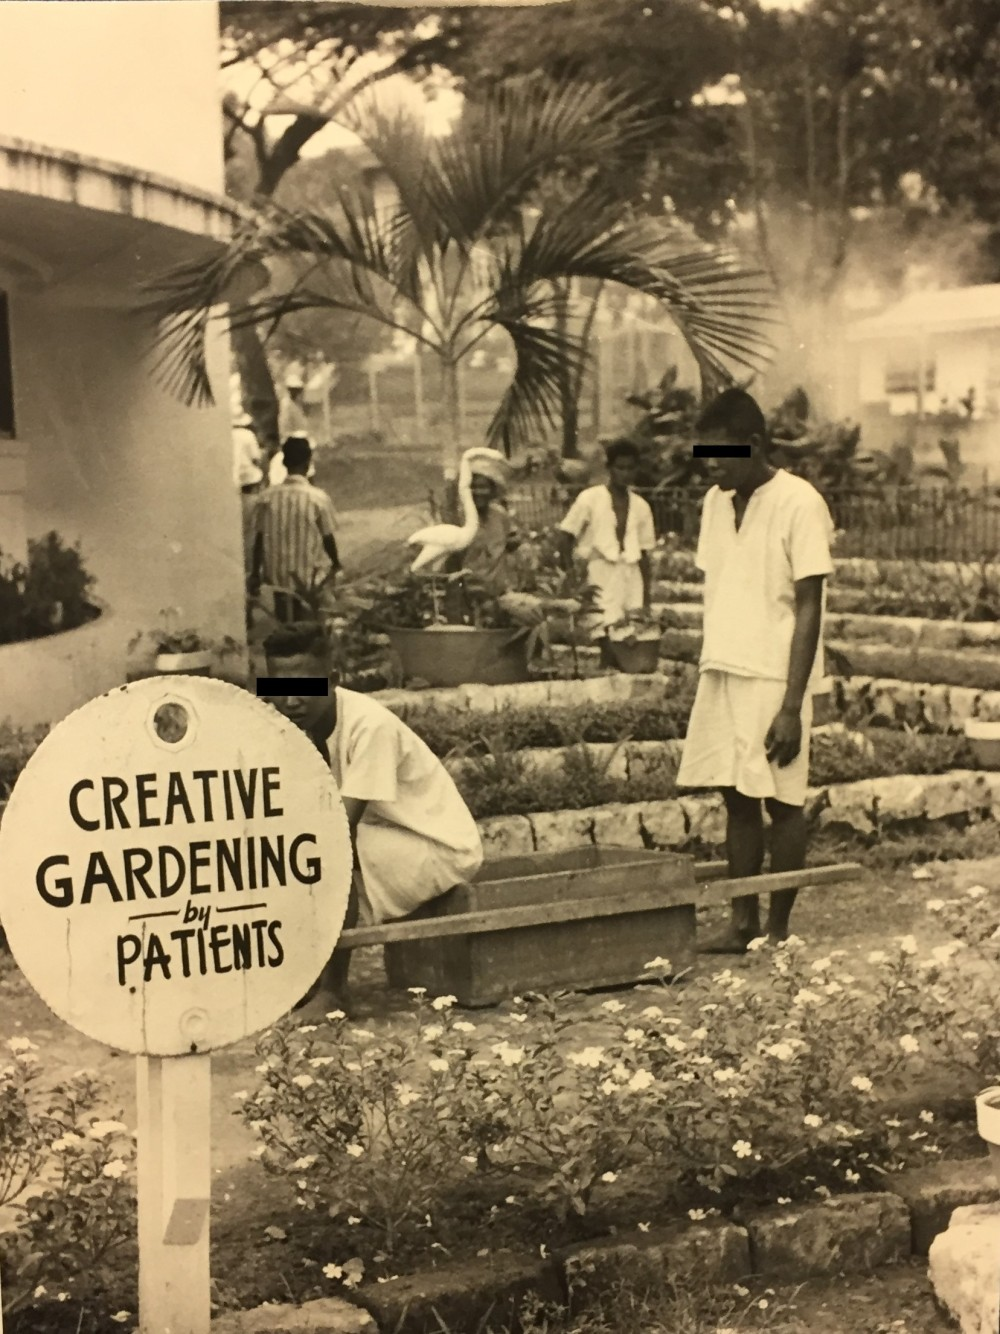 Creative gardening by patients